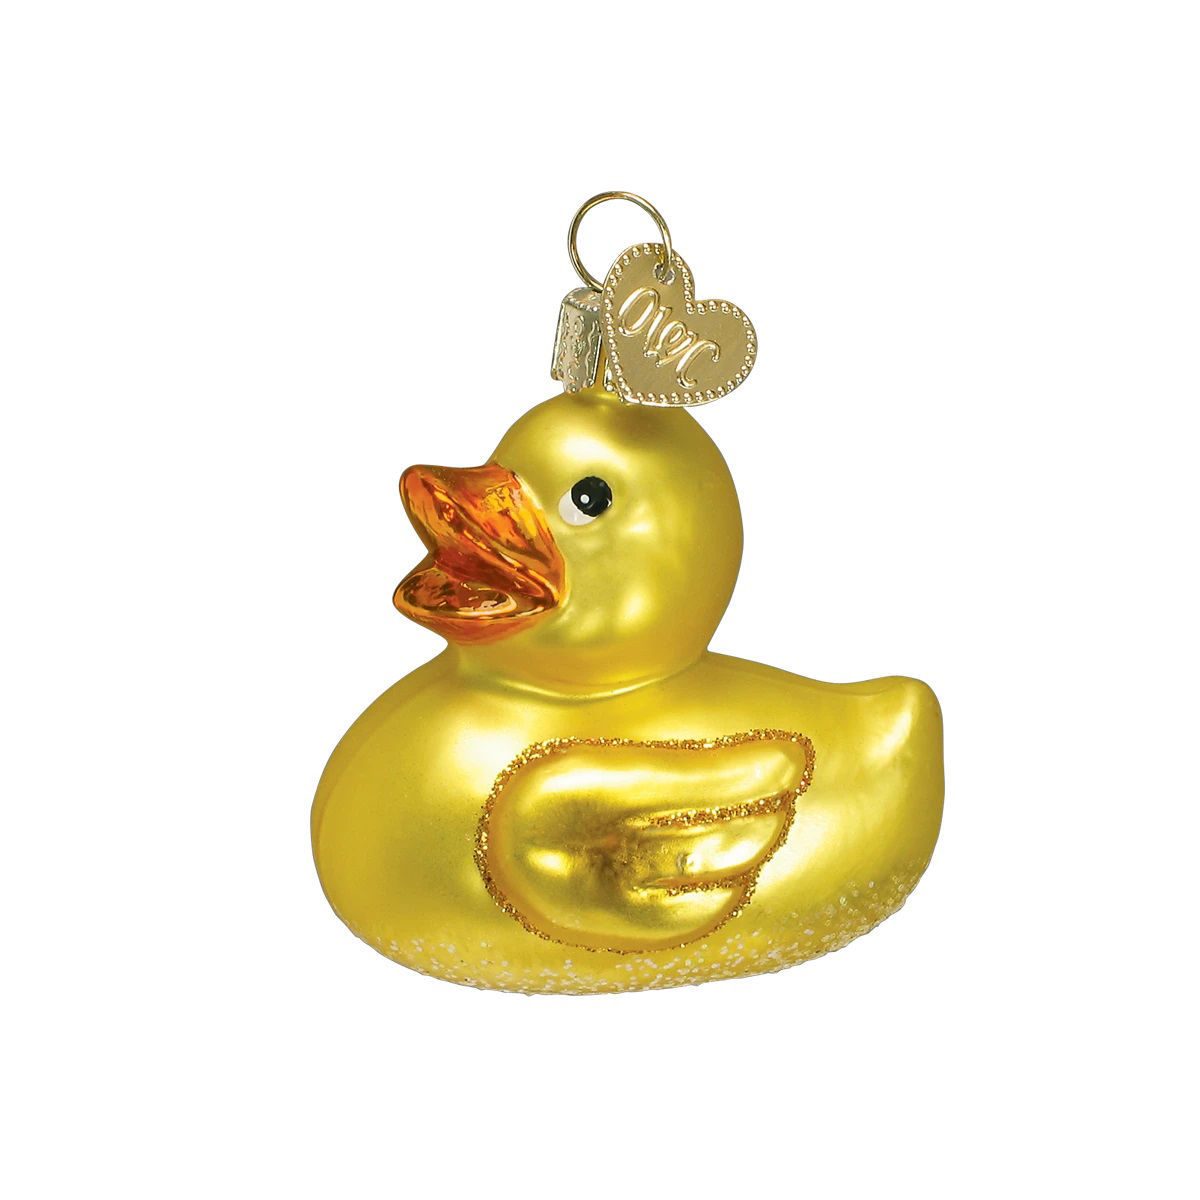 Rubber Ducky Ornament by Old World Christmas